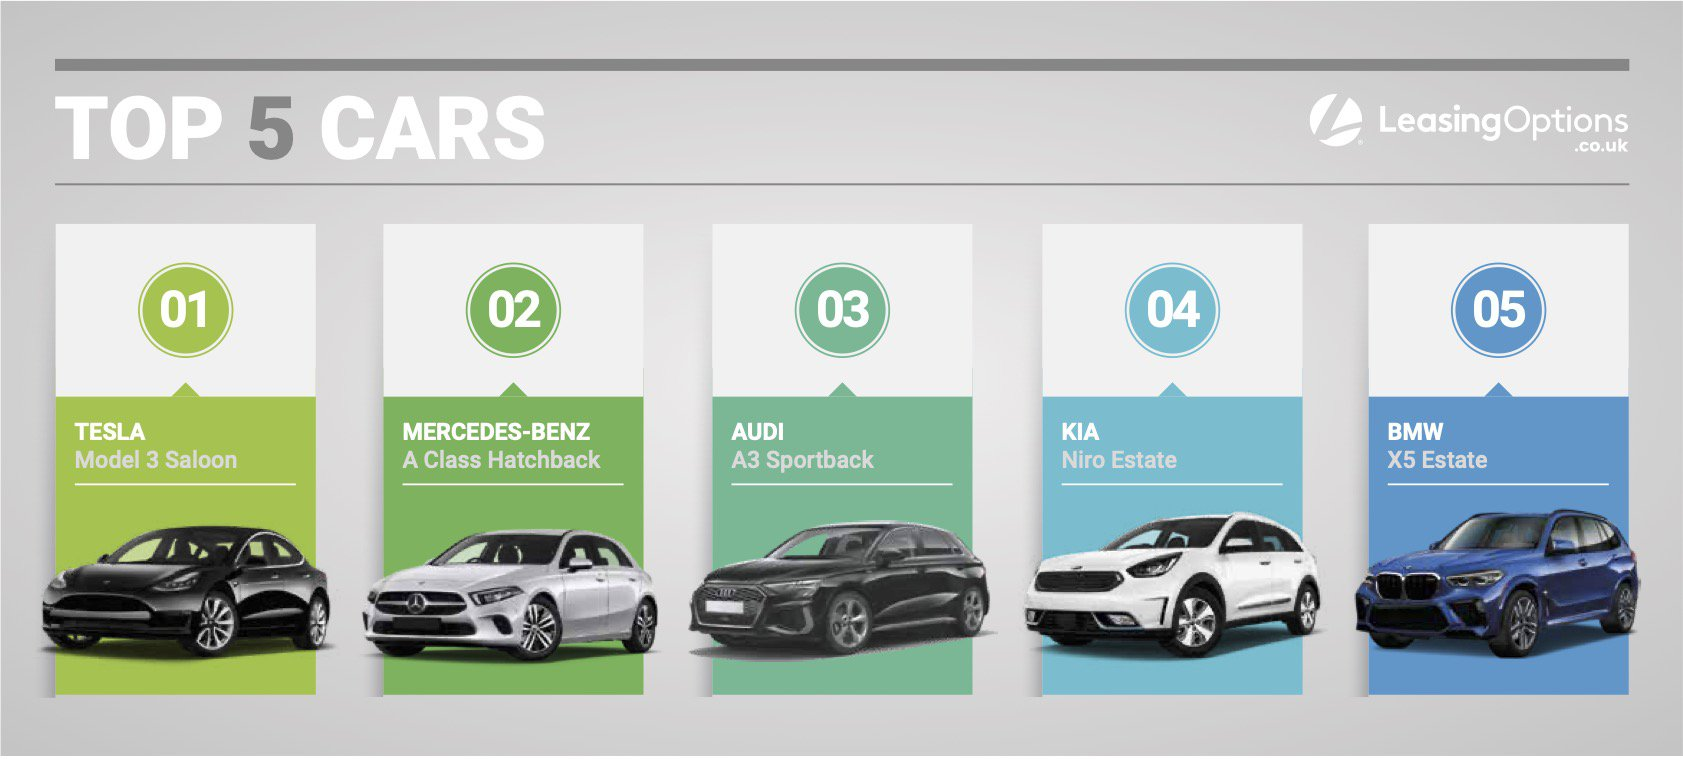 Top 5 Business Cars